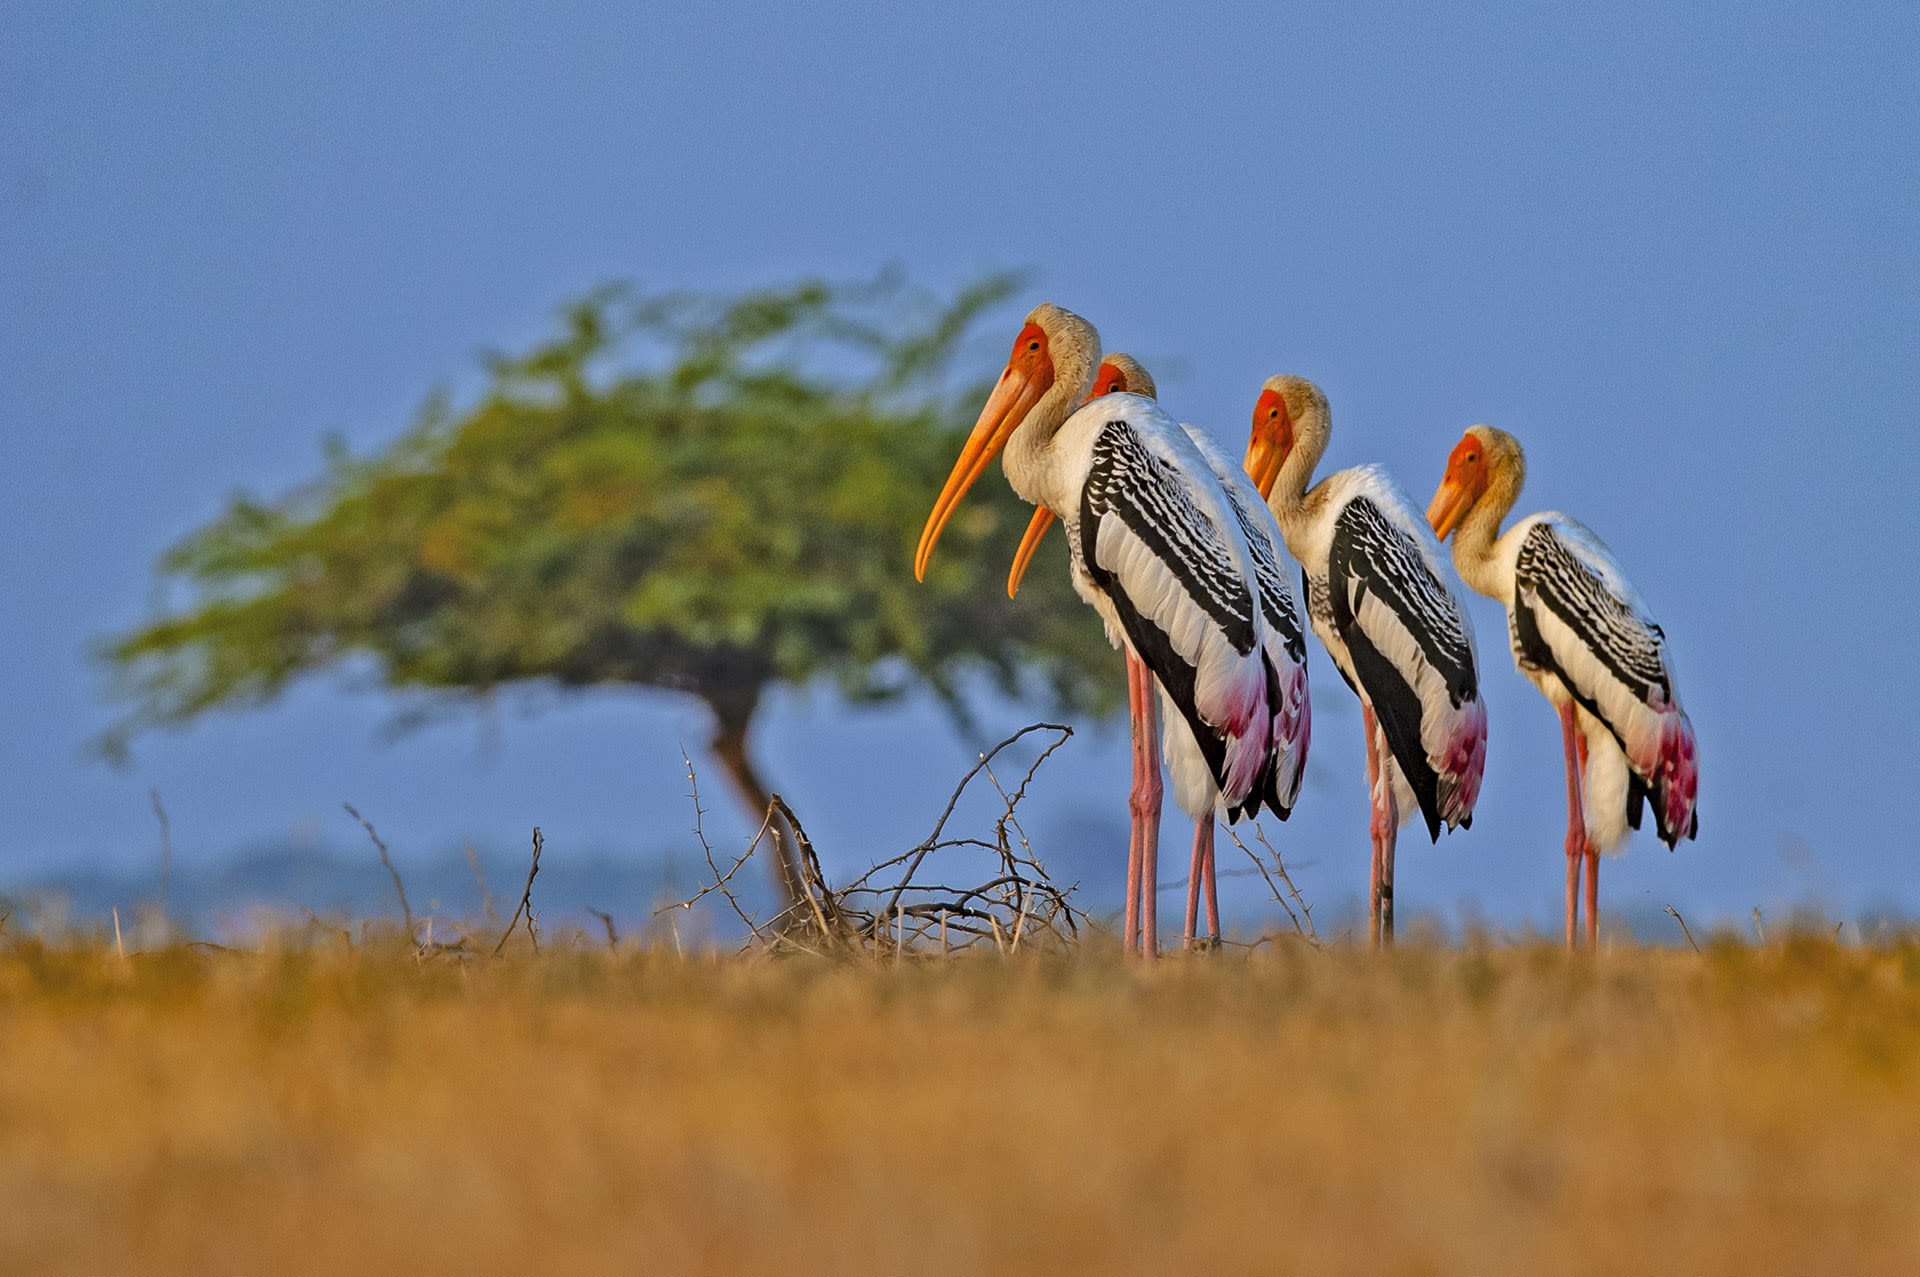 "Among these winter visitors is the painted stork (Mycteria leucocephala), a large, water-loving species that is ""often seen near water bodies such as wetlands, marshes, and flooded agricultural fields,"" says eBird. Painted storks are local migrants, meaning they fly to the Little Rann of Kutch from other parts of Gujarat and western India. The wetlands also host populations of demoiselle cranes, flamingos, and pelicans. According to Kolkata Birds, ""Over 200 bird species have been recorded in the area."""